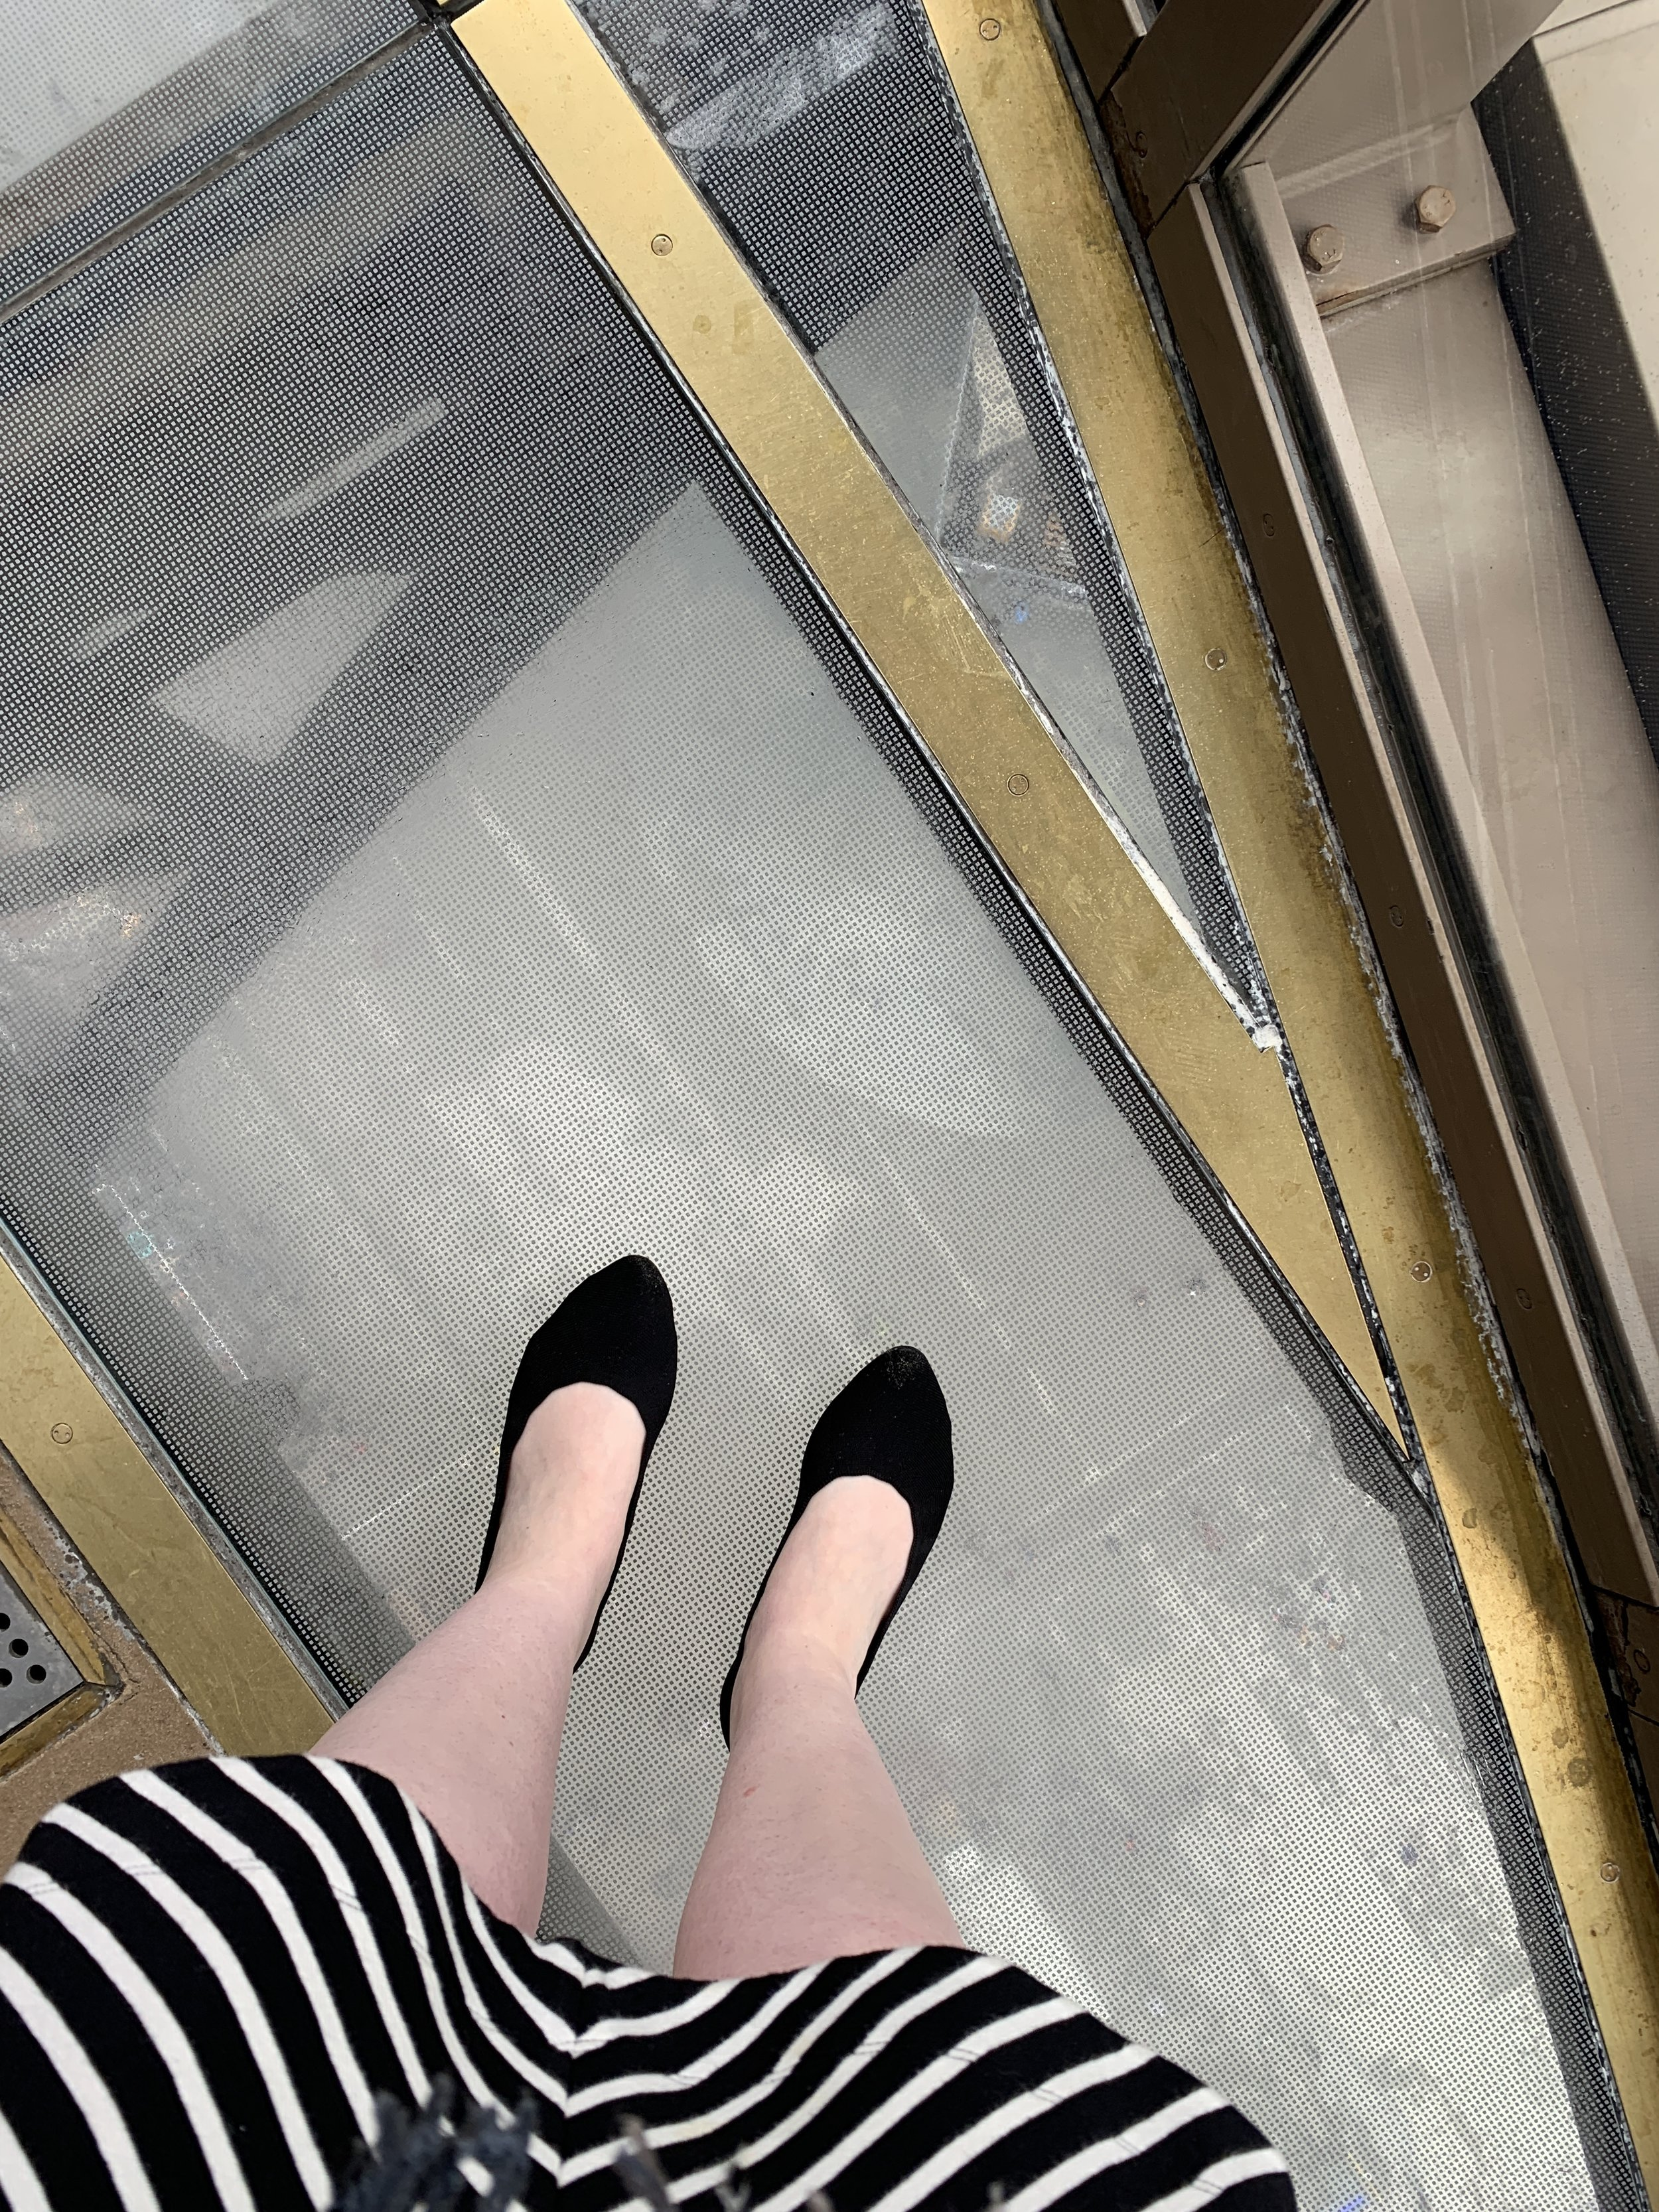 The glass floor was a little creepy to stand on.